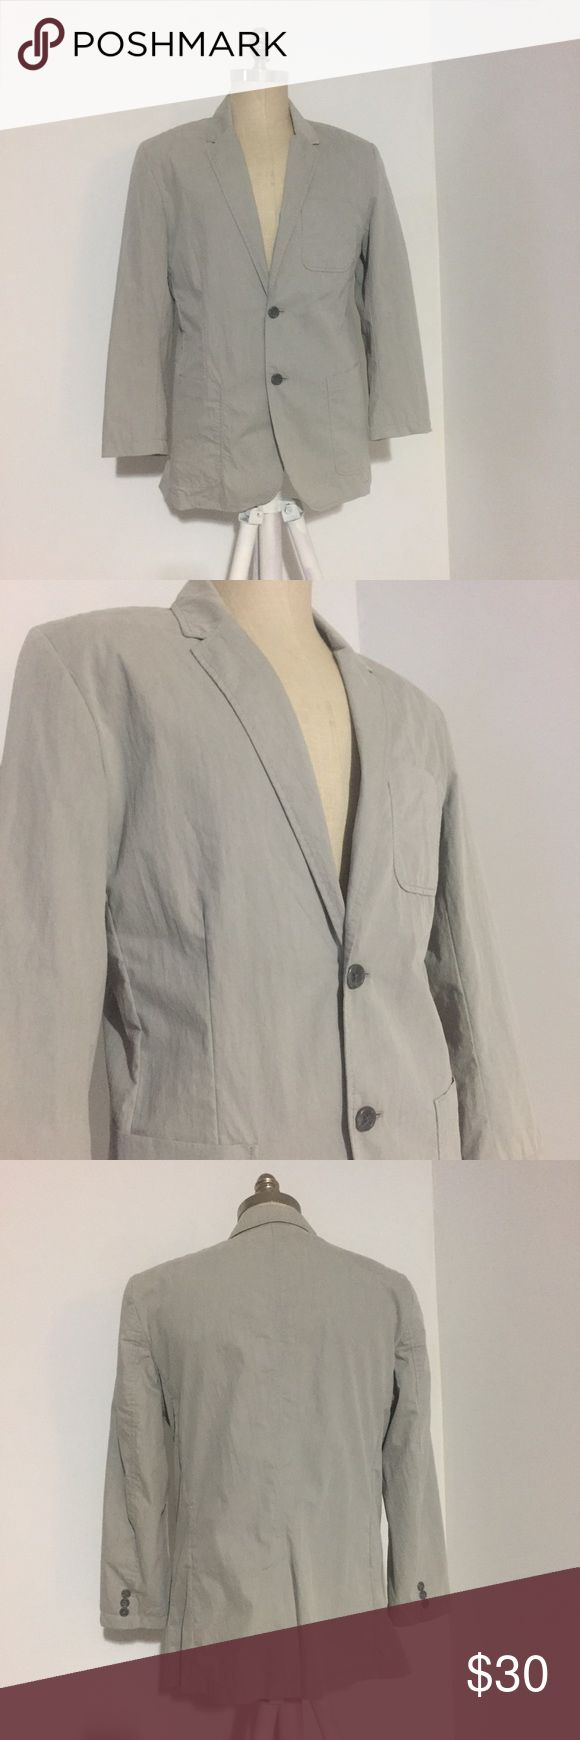 Calvin Klein Gray Sportscoat Gorgeous lightweight sportcoat in like new condition by Calvin Klein. Size M with 2 buttons. Calvin Klein Jackets & Coats